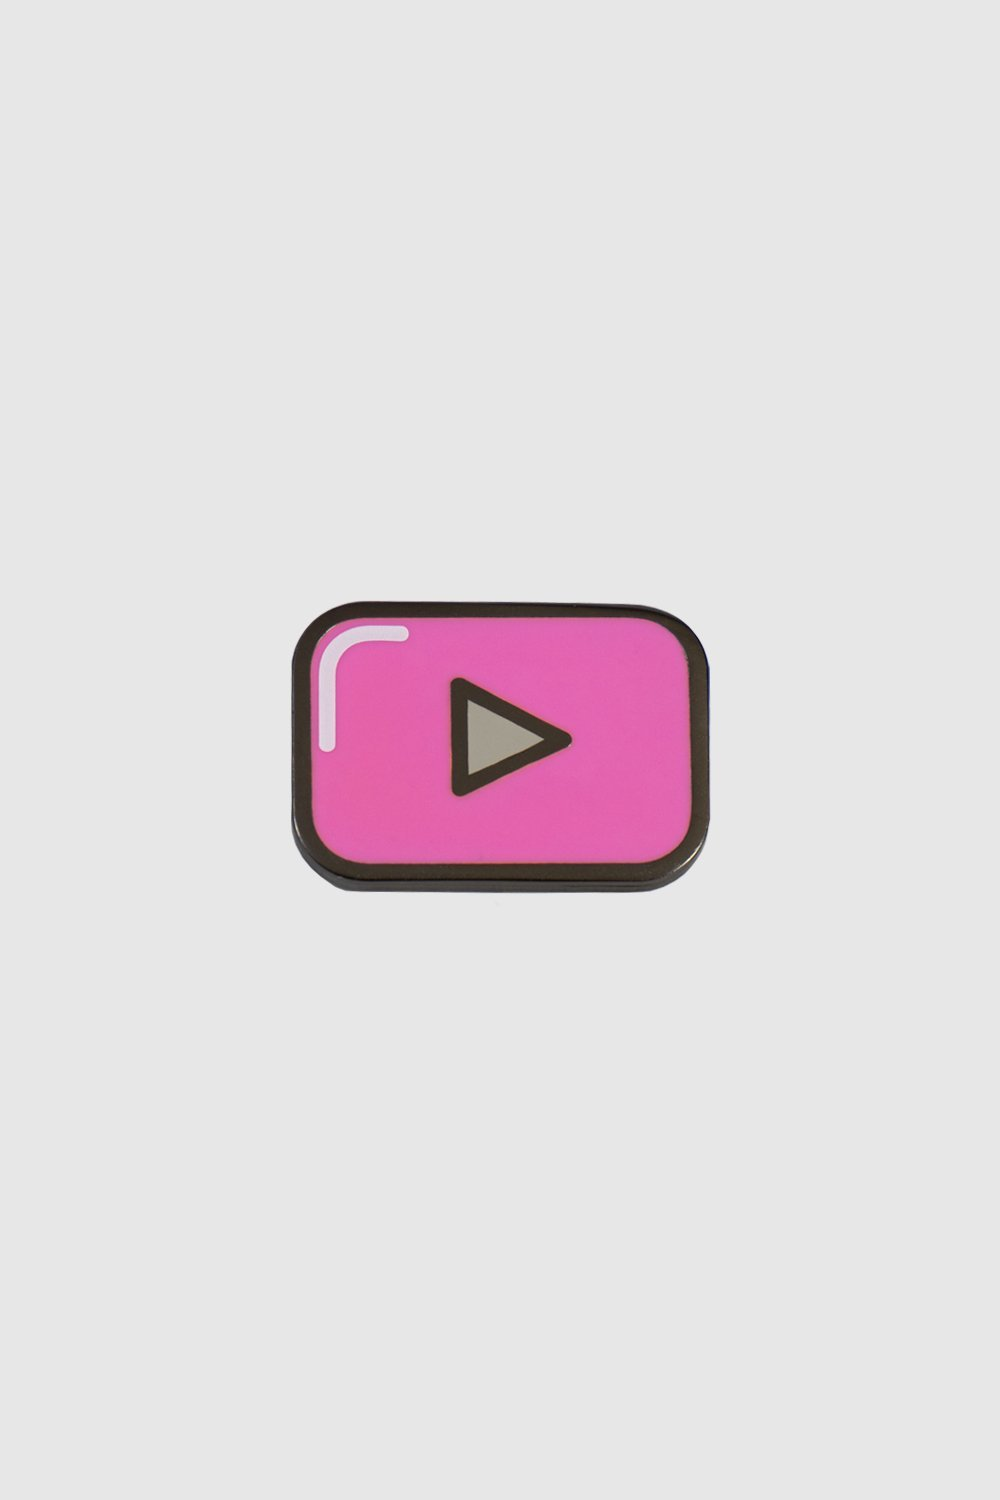 Youtube Play Pin